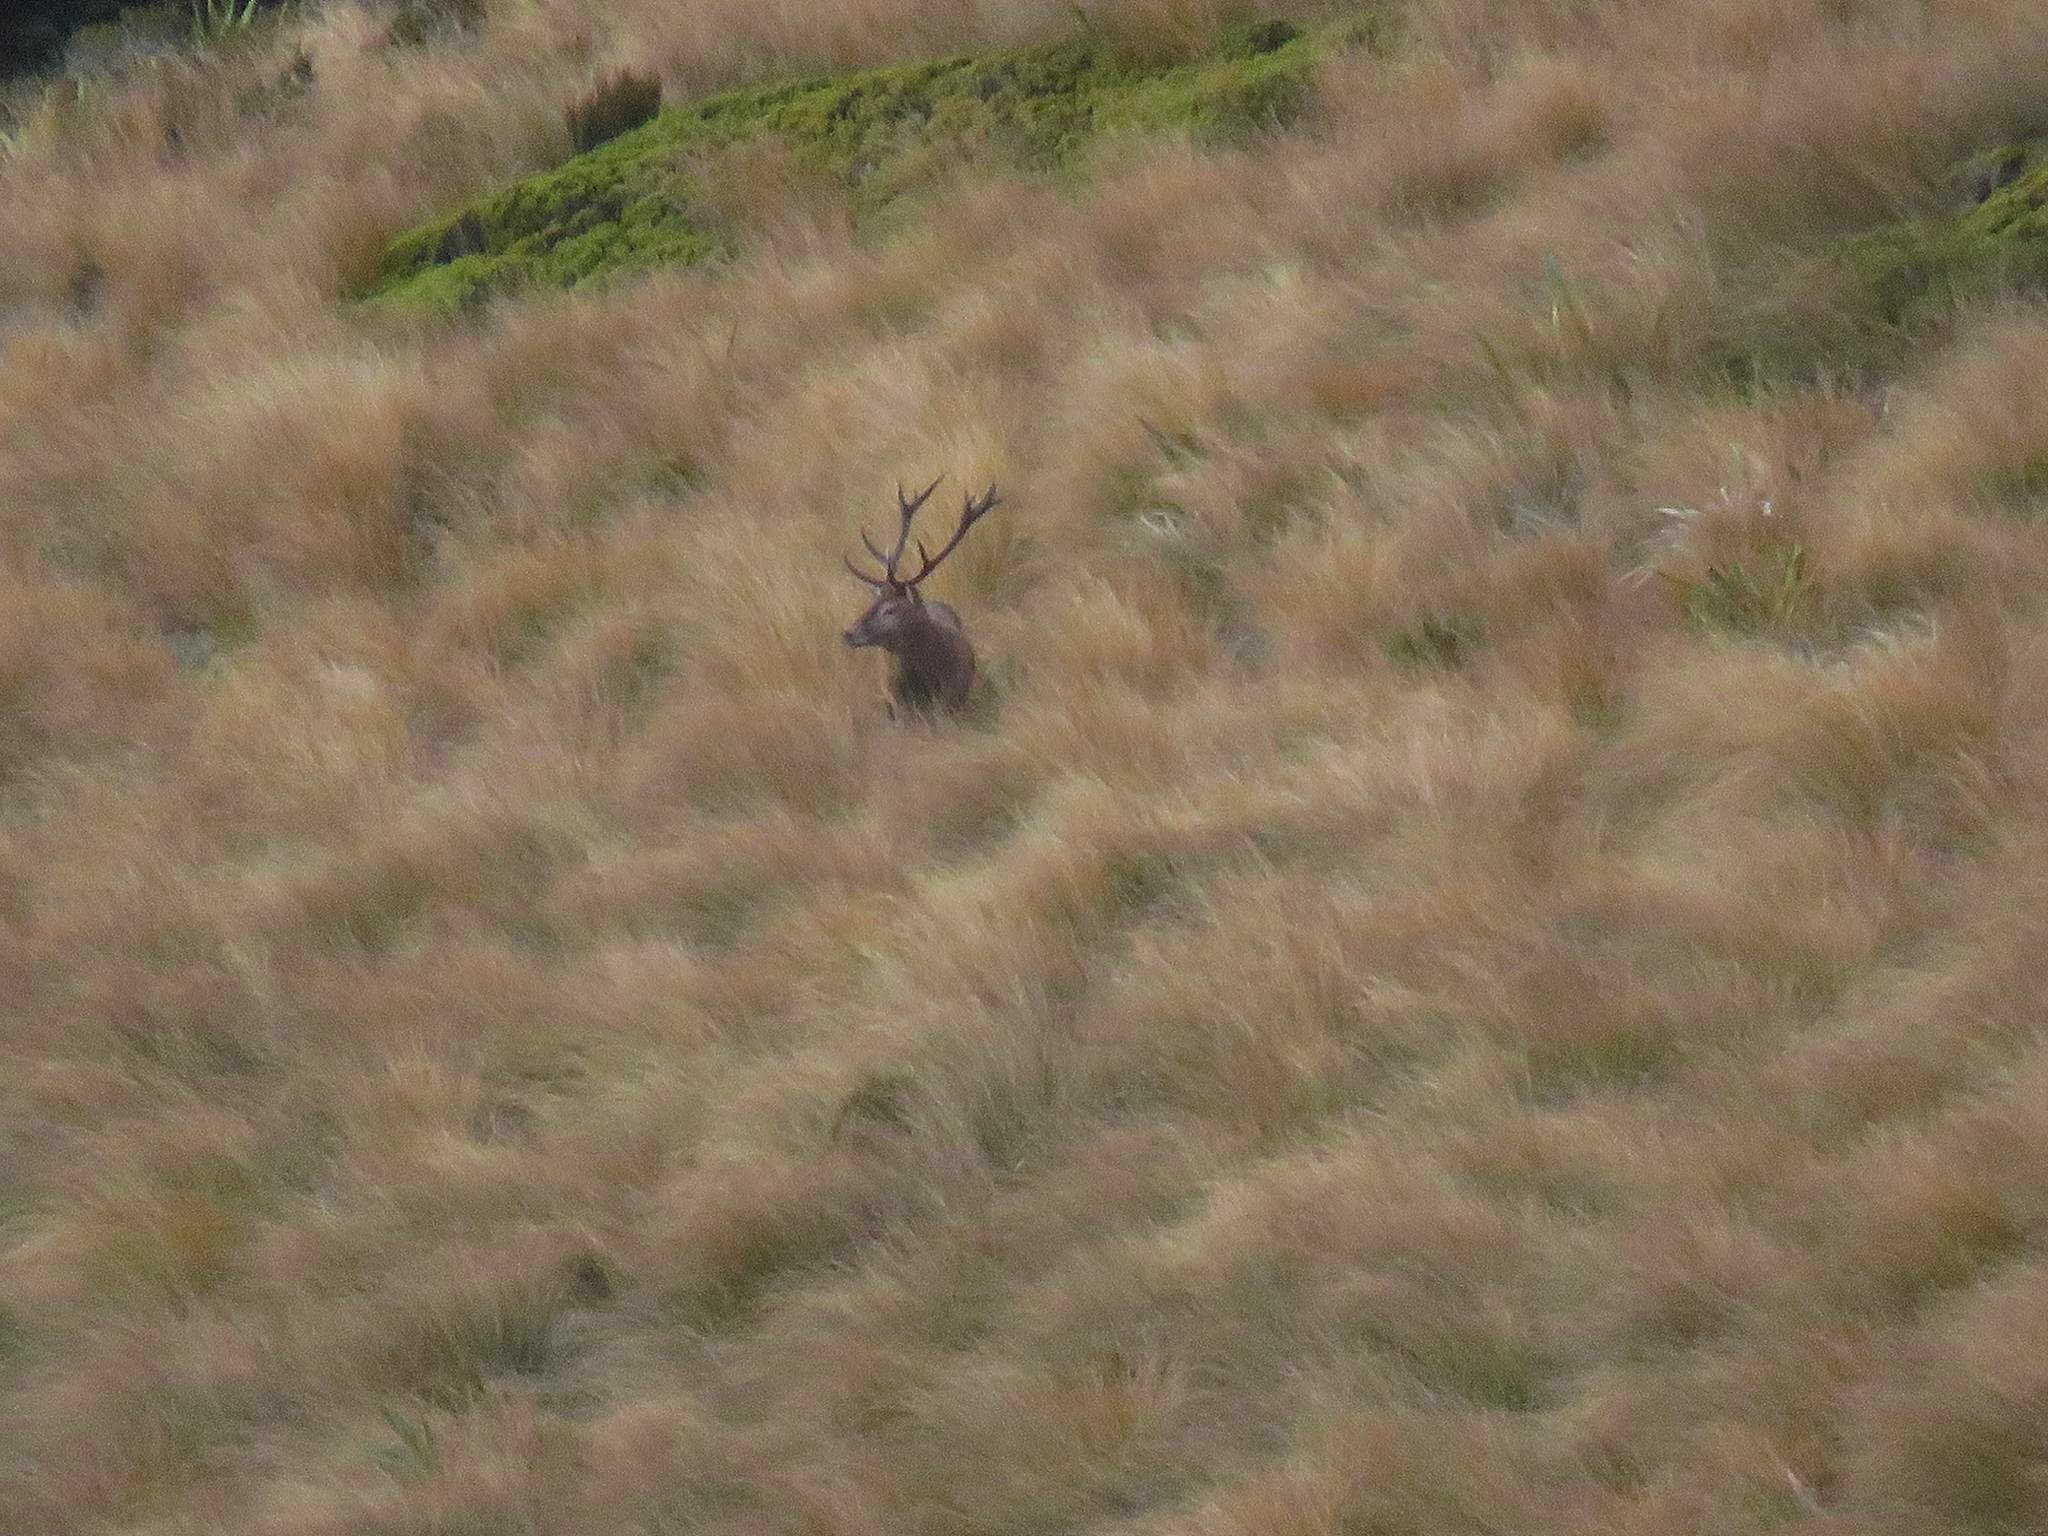 stag in the tussocks